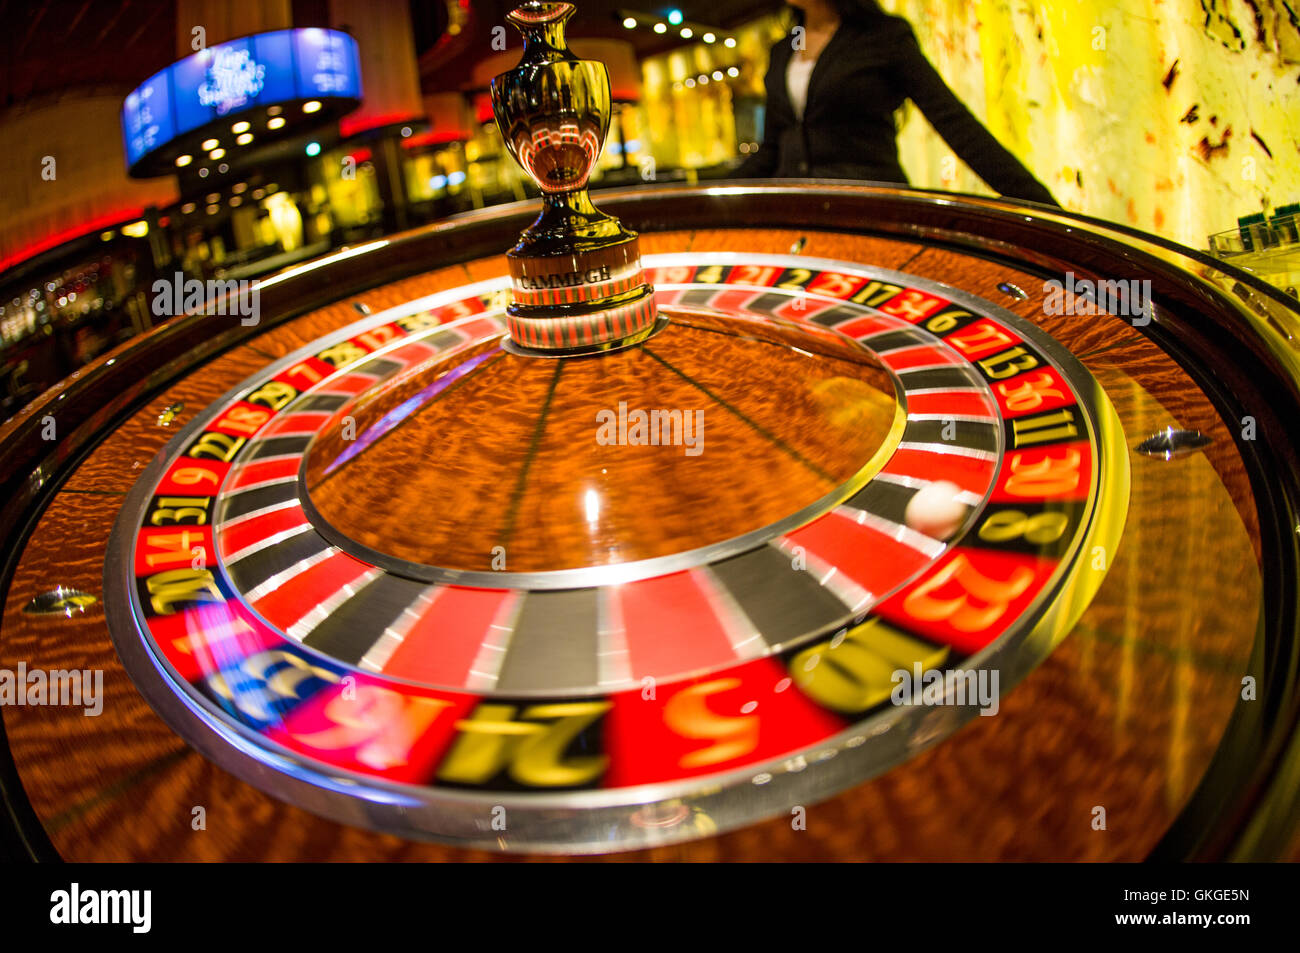 All the numbers on a roulette table add up to